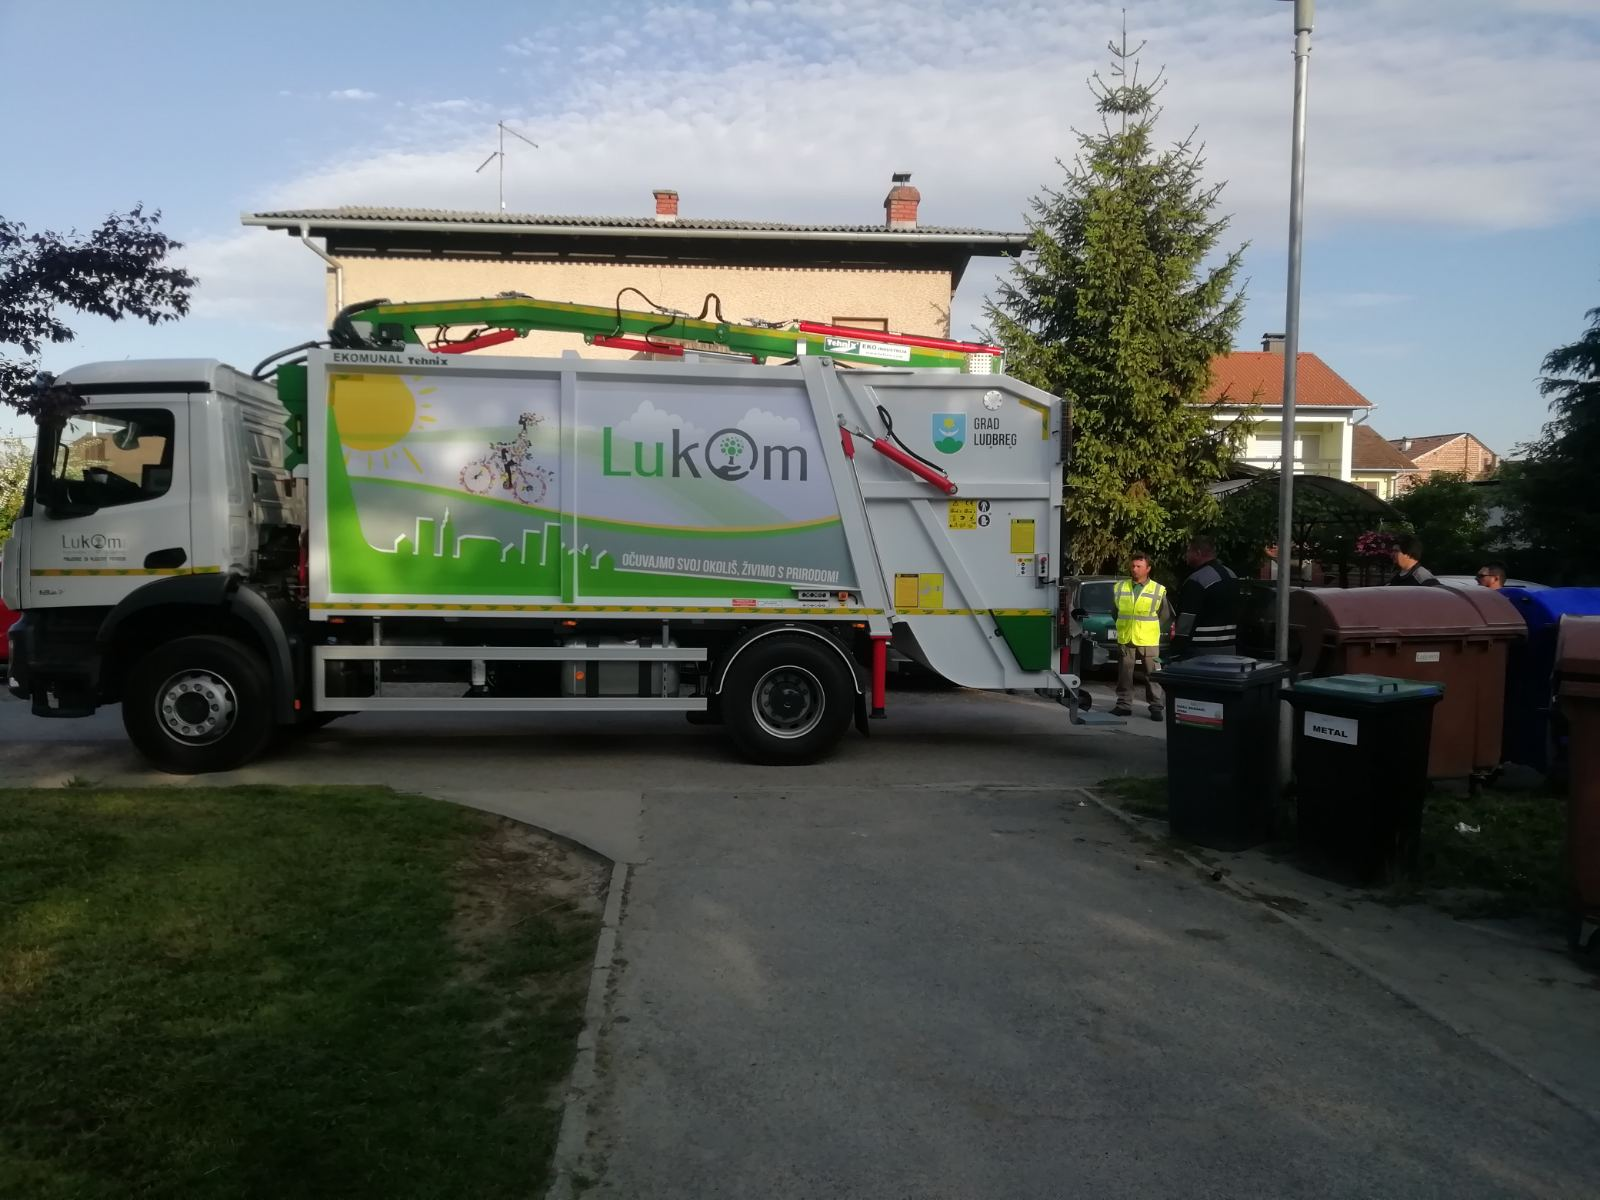 Delivery of municipal vehicle for Lukom d.o.o. Ludbreg